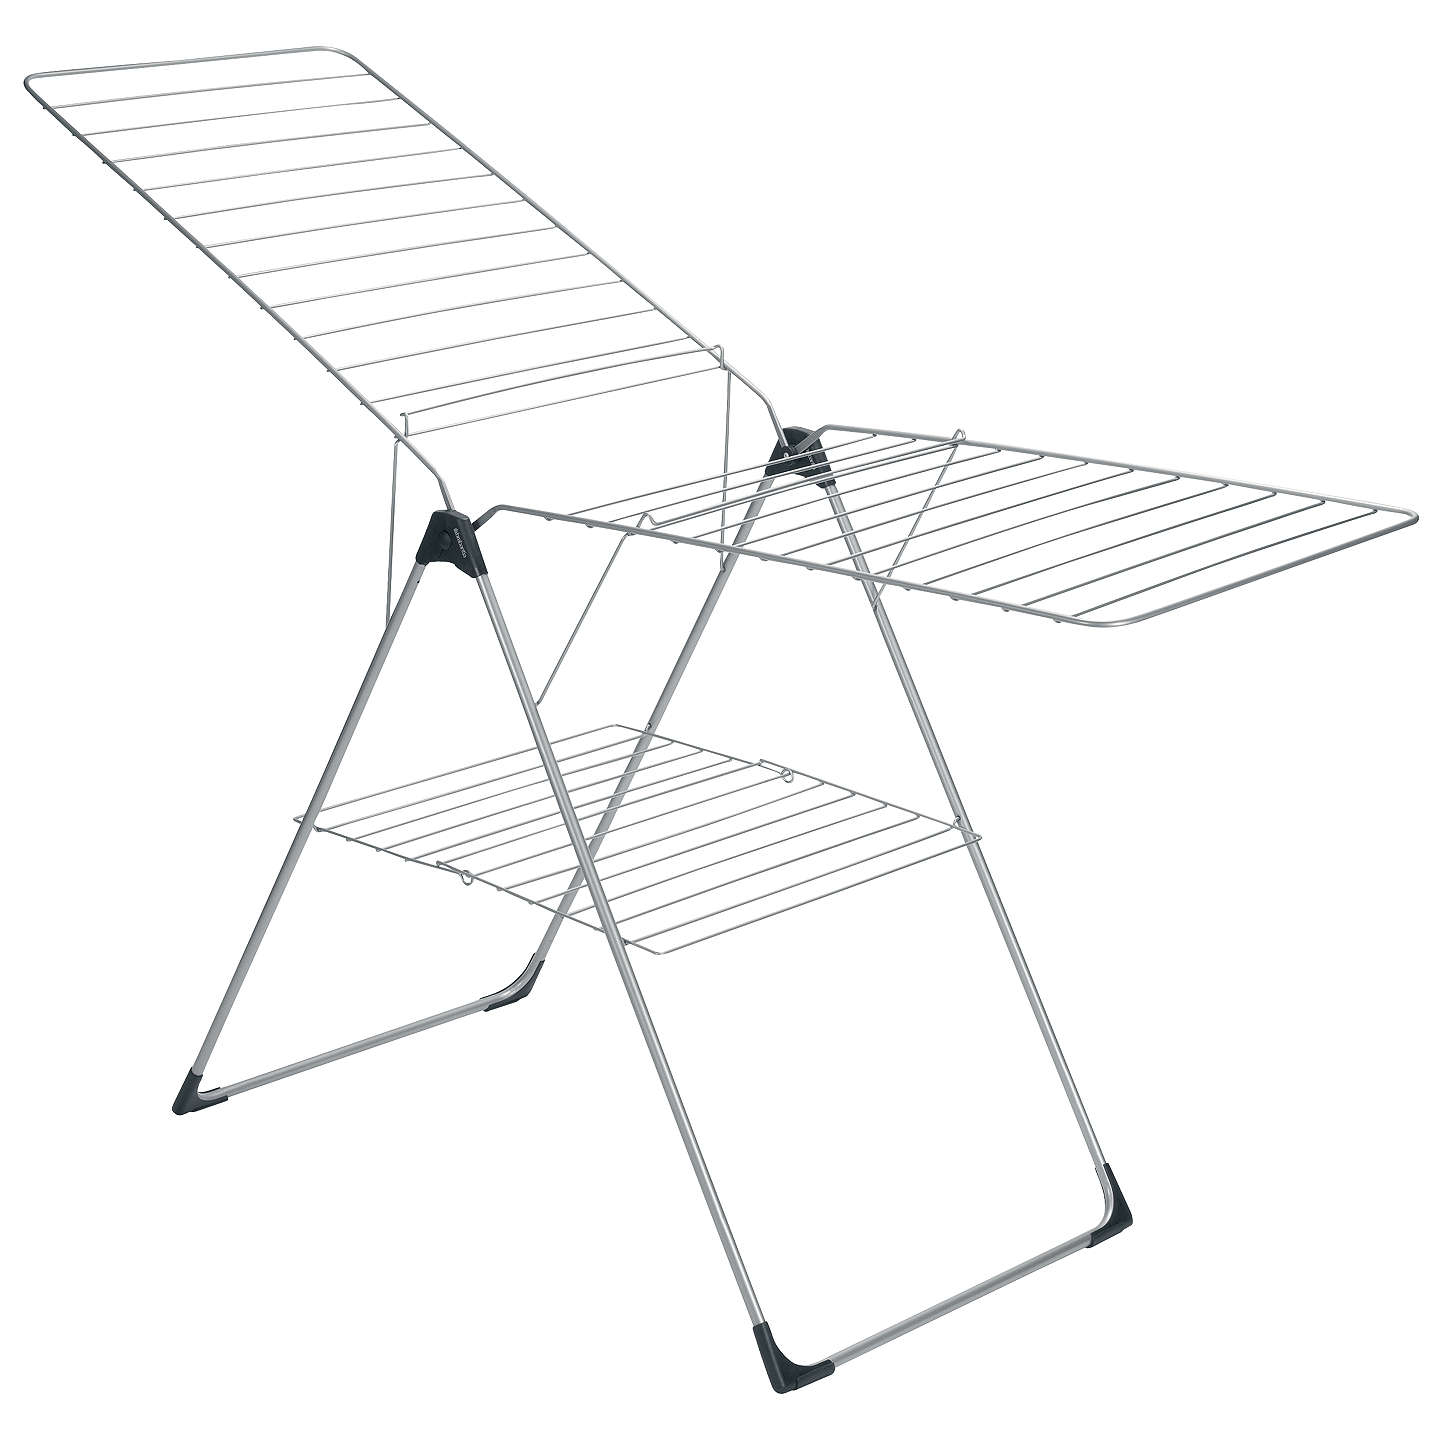 brabantia indoor clothes airer at john lewis. Black Bedroom Furniture Sets. Home Design Ideas